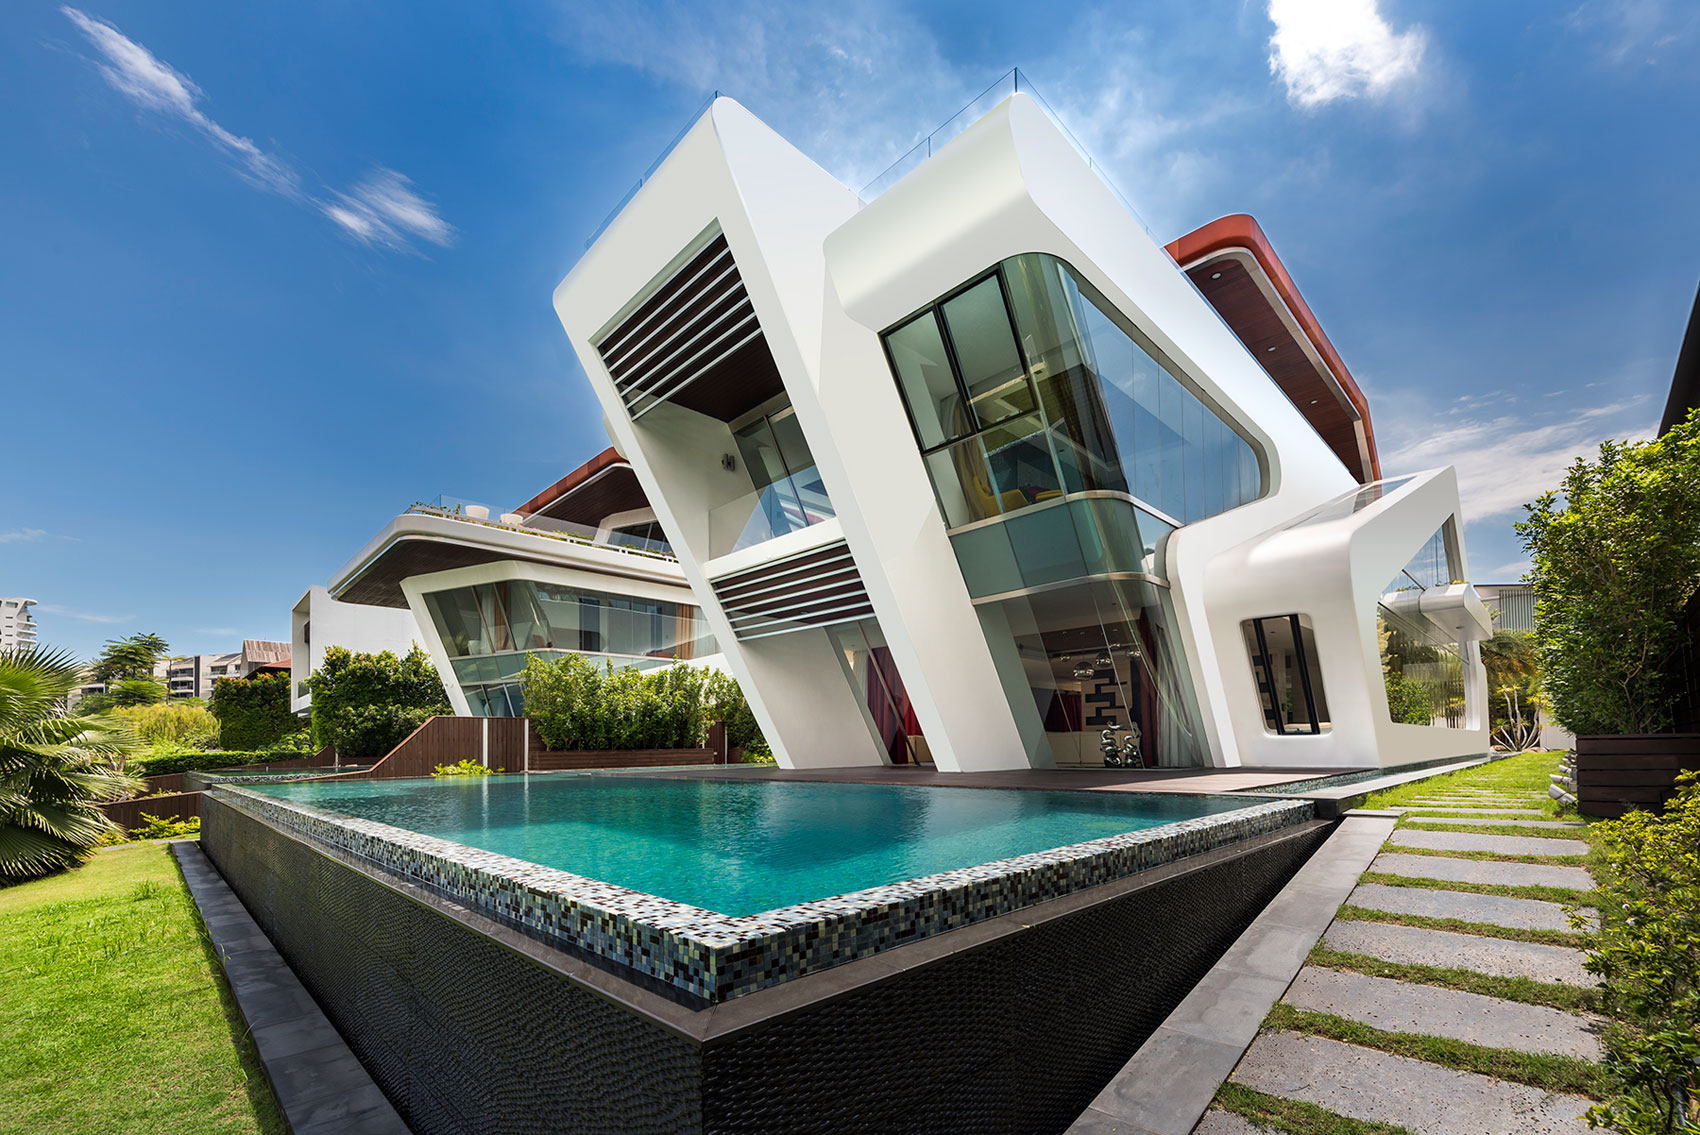 Mercurio design lab create a modern villa in singapore Villa designs india